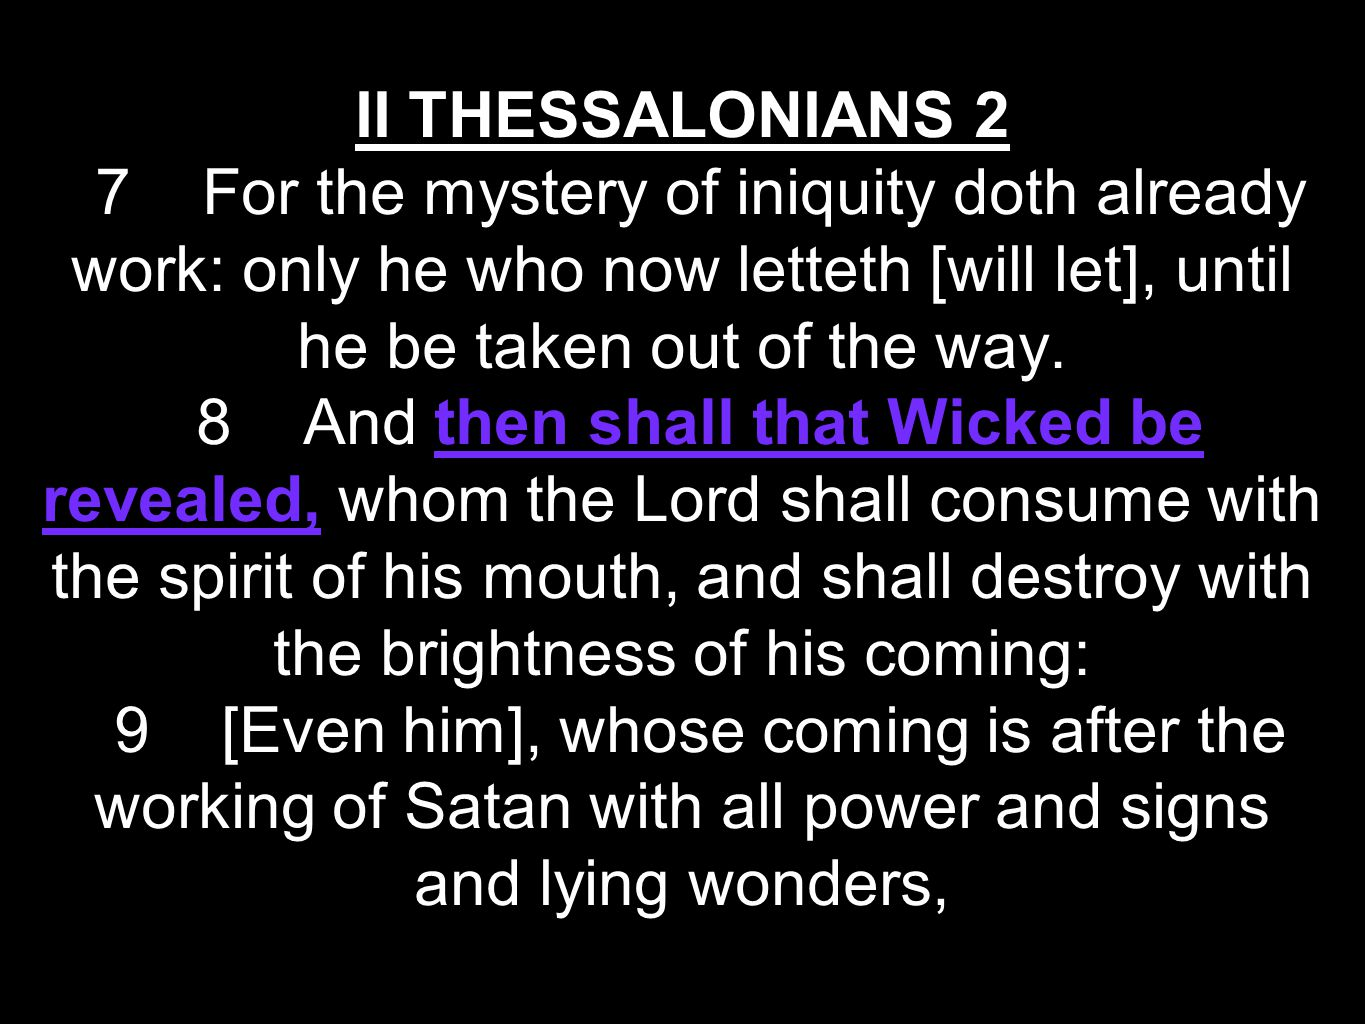 II THESSALONIANS 2 7 For the mystery of iniquity doth already work: only he who now letteth [will let], until he be taken out of the way.